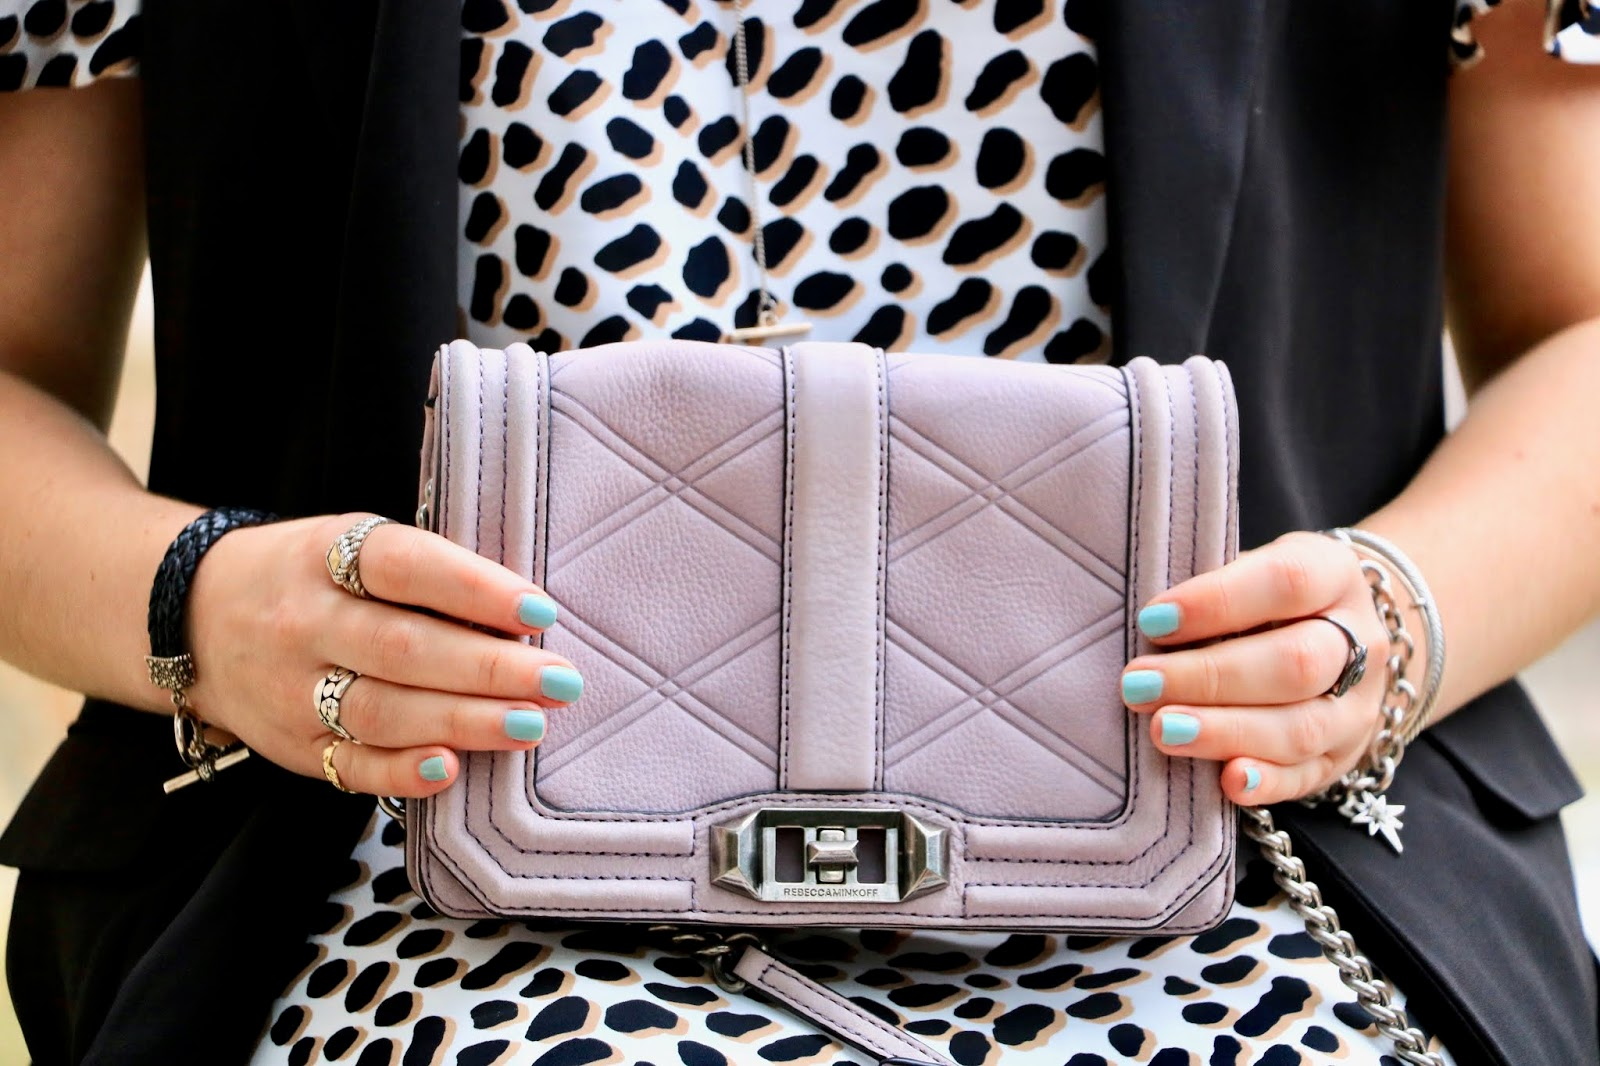 Nyc fashion blogger Kathleen Harper wearing a purple Rebecca Minkoff purse